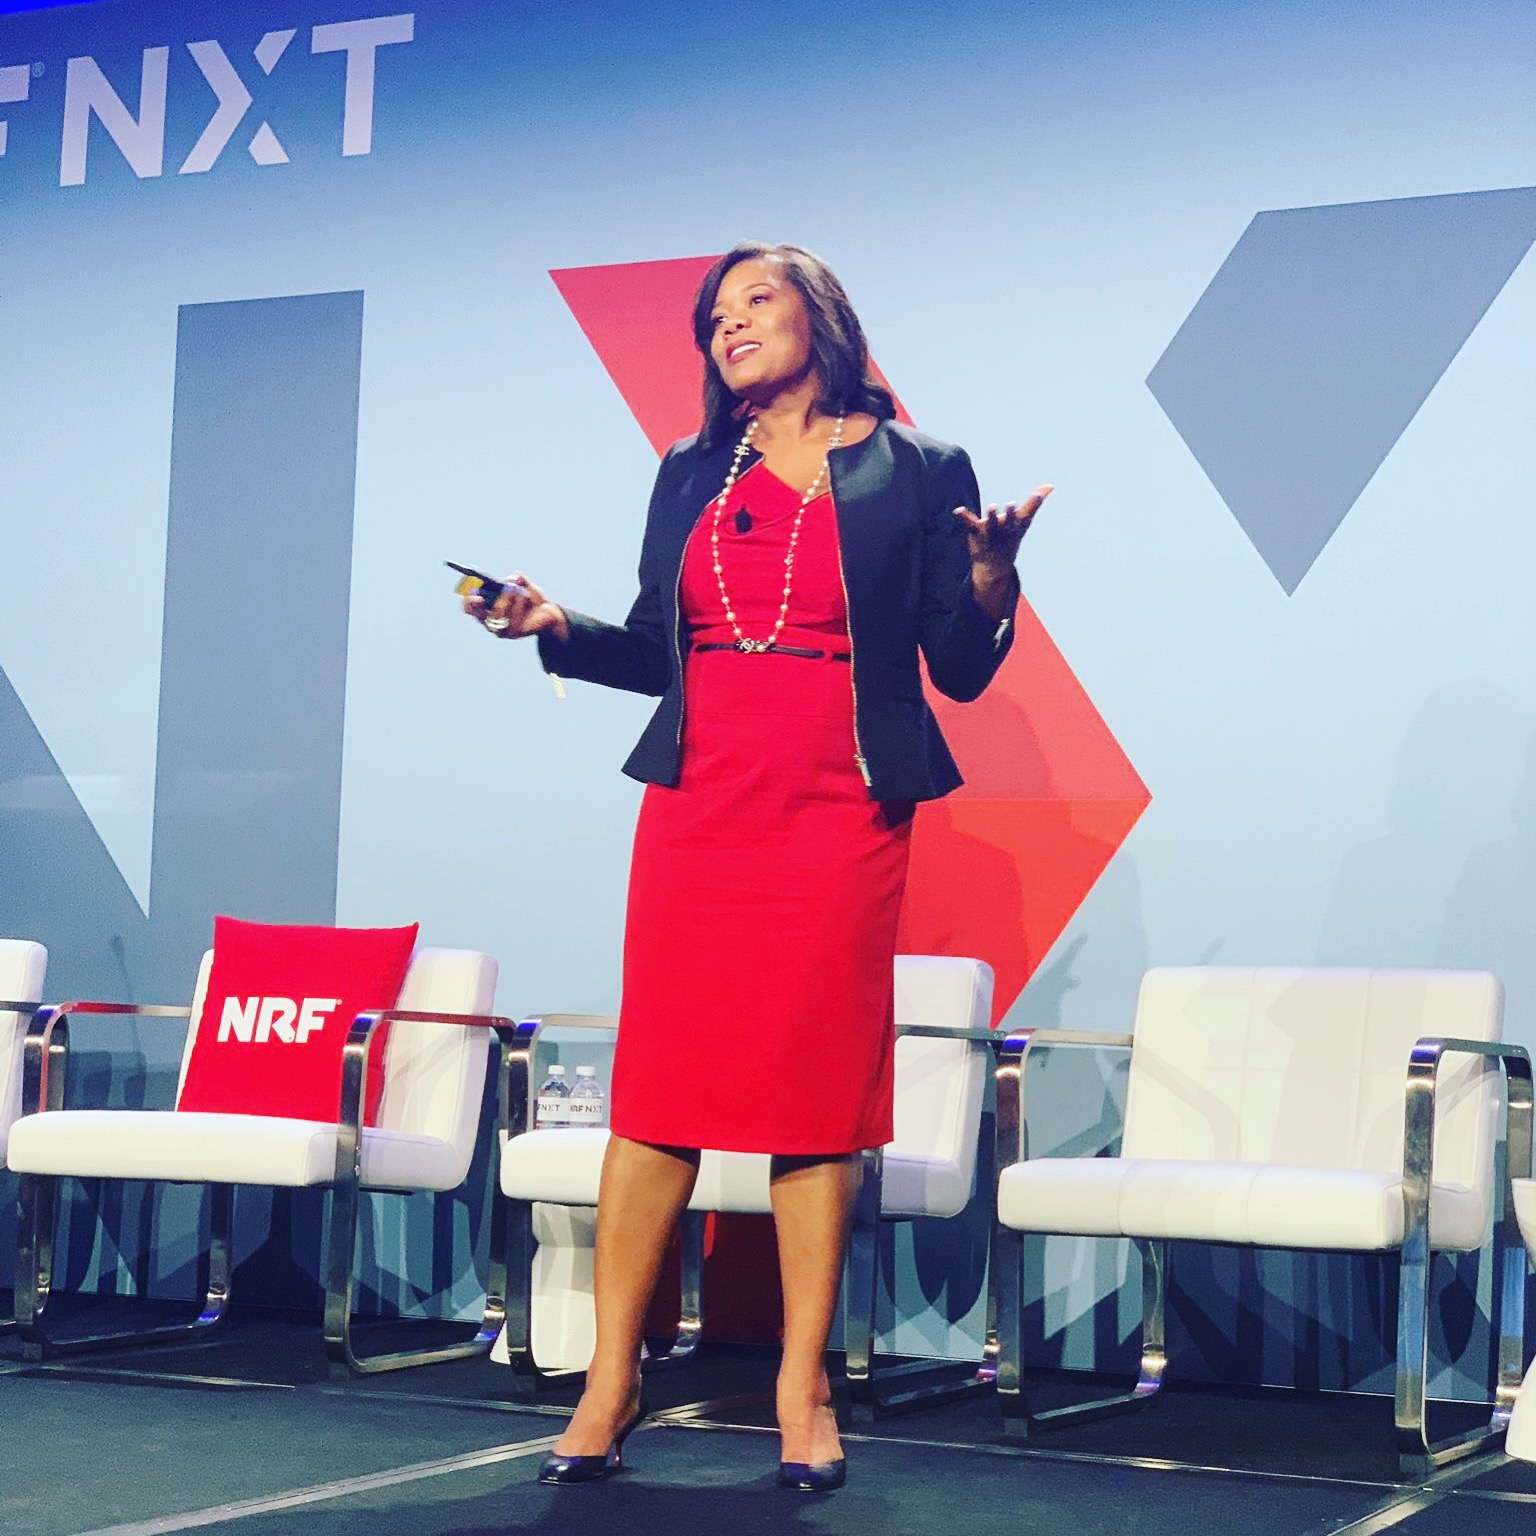 Lockie Andrews giving a Ted-style talk at the NRF NXT conference in Las Vegas July 2019.